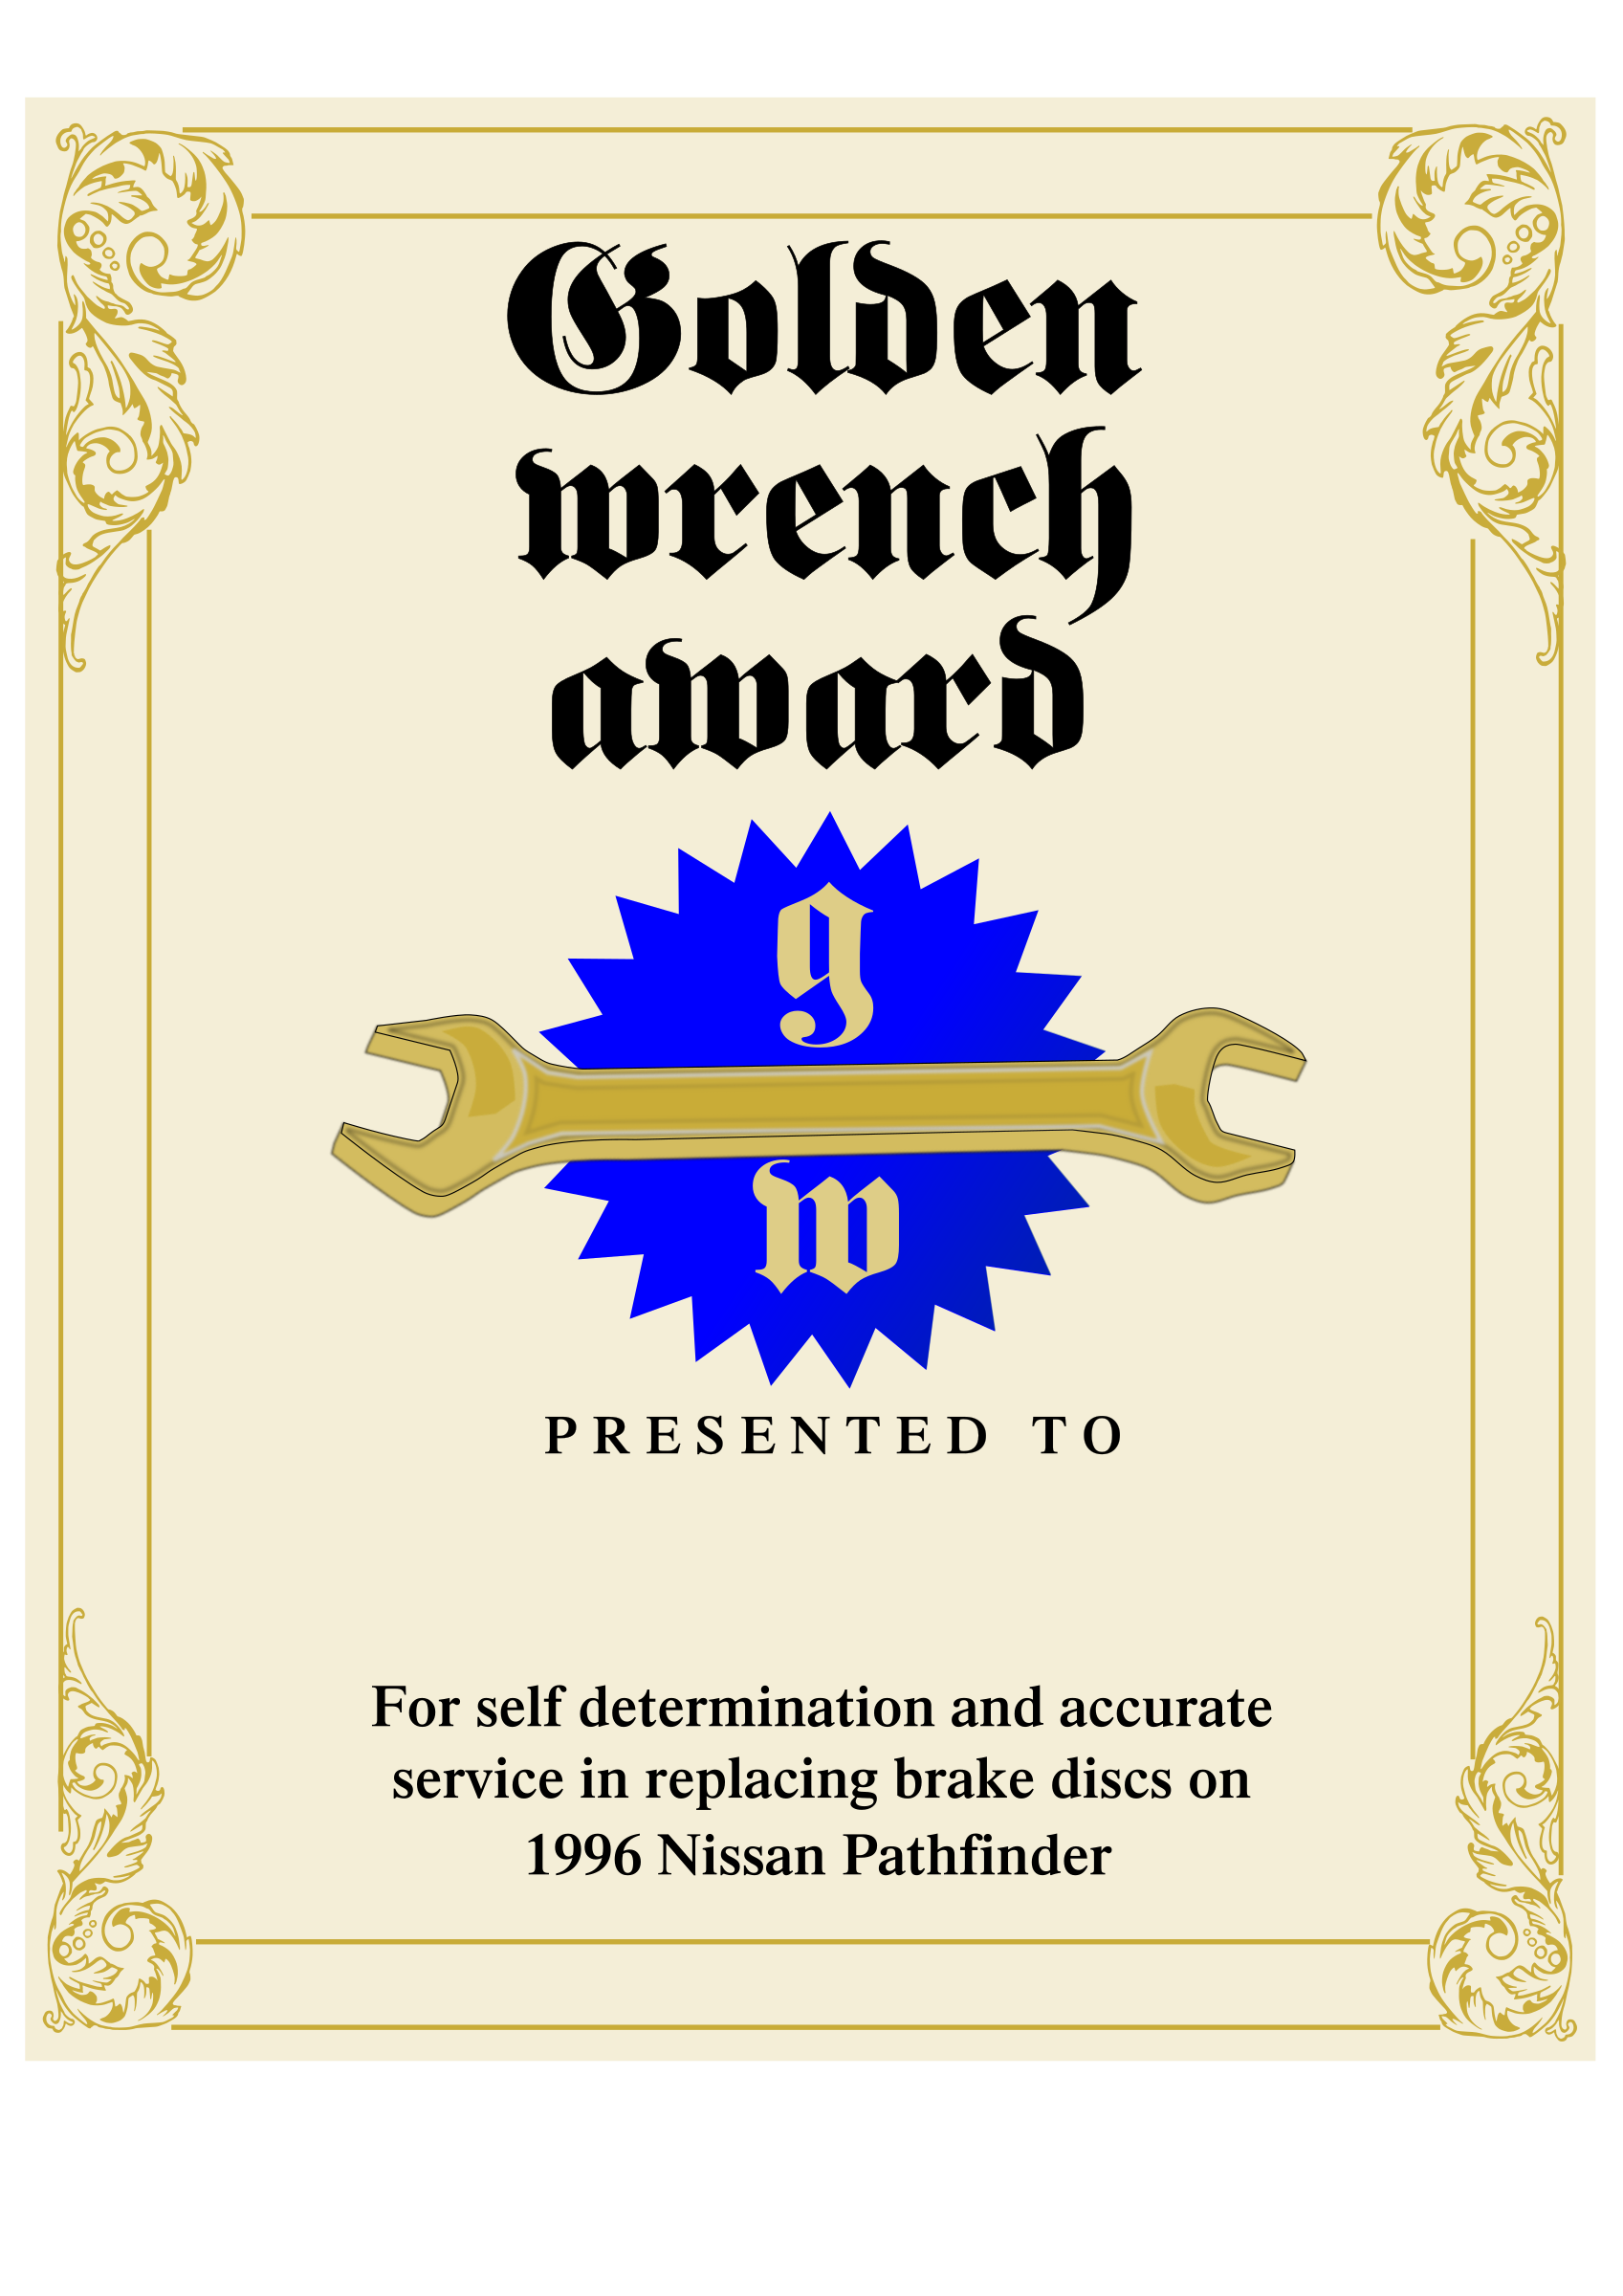 Golden Wrench Award by Raker Tooth